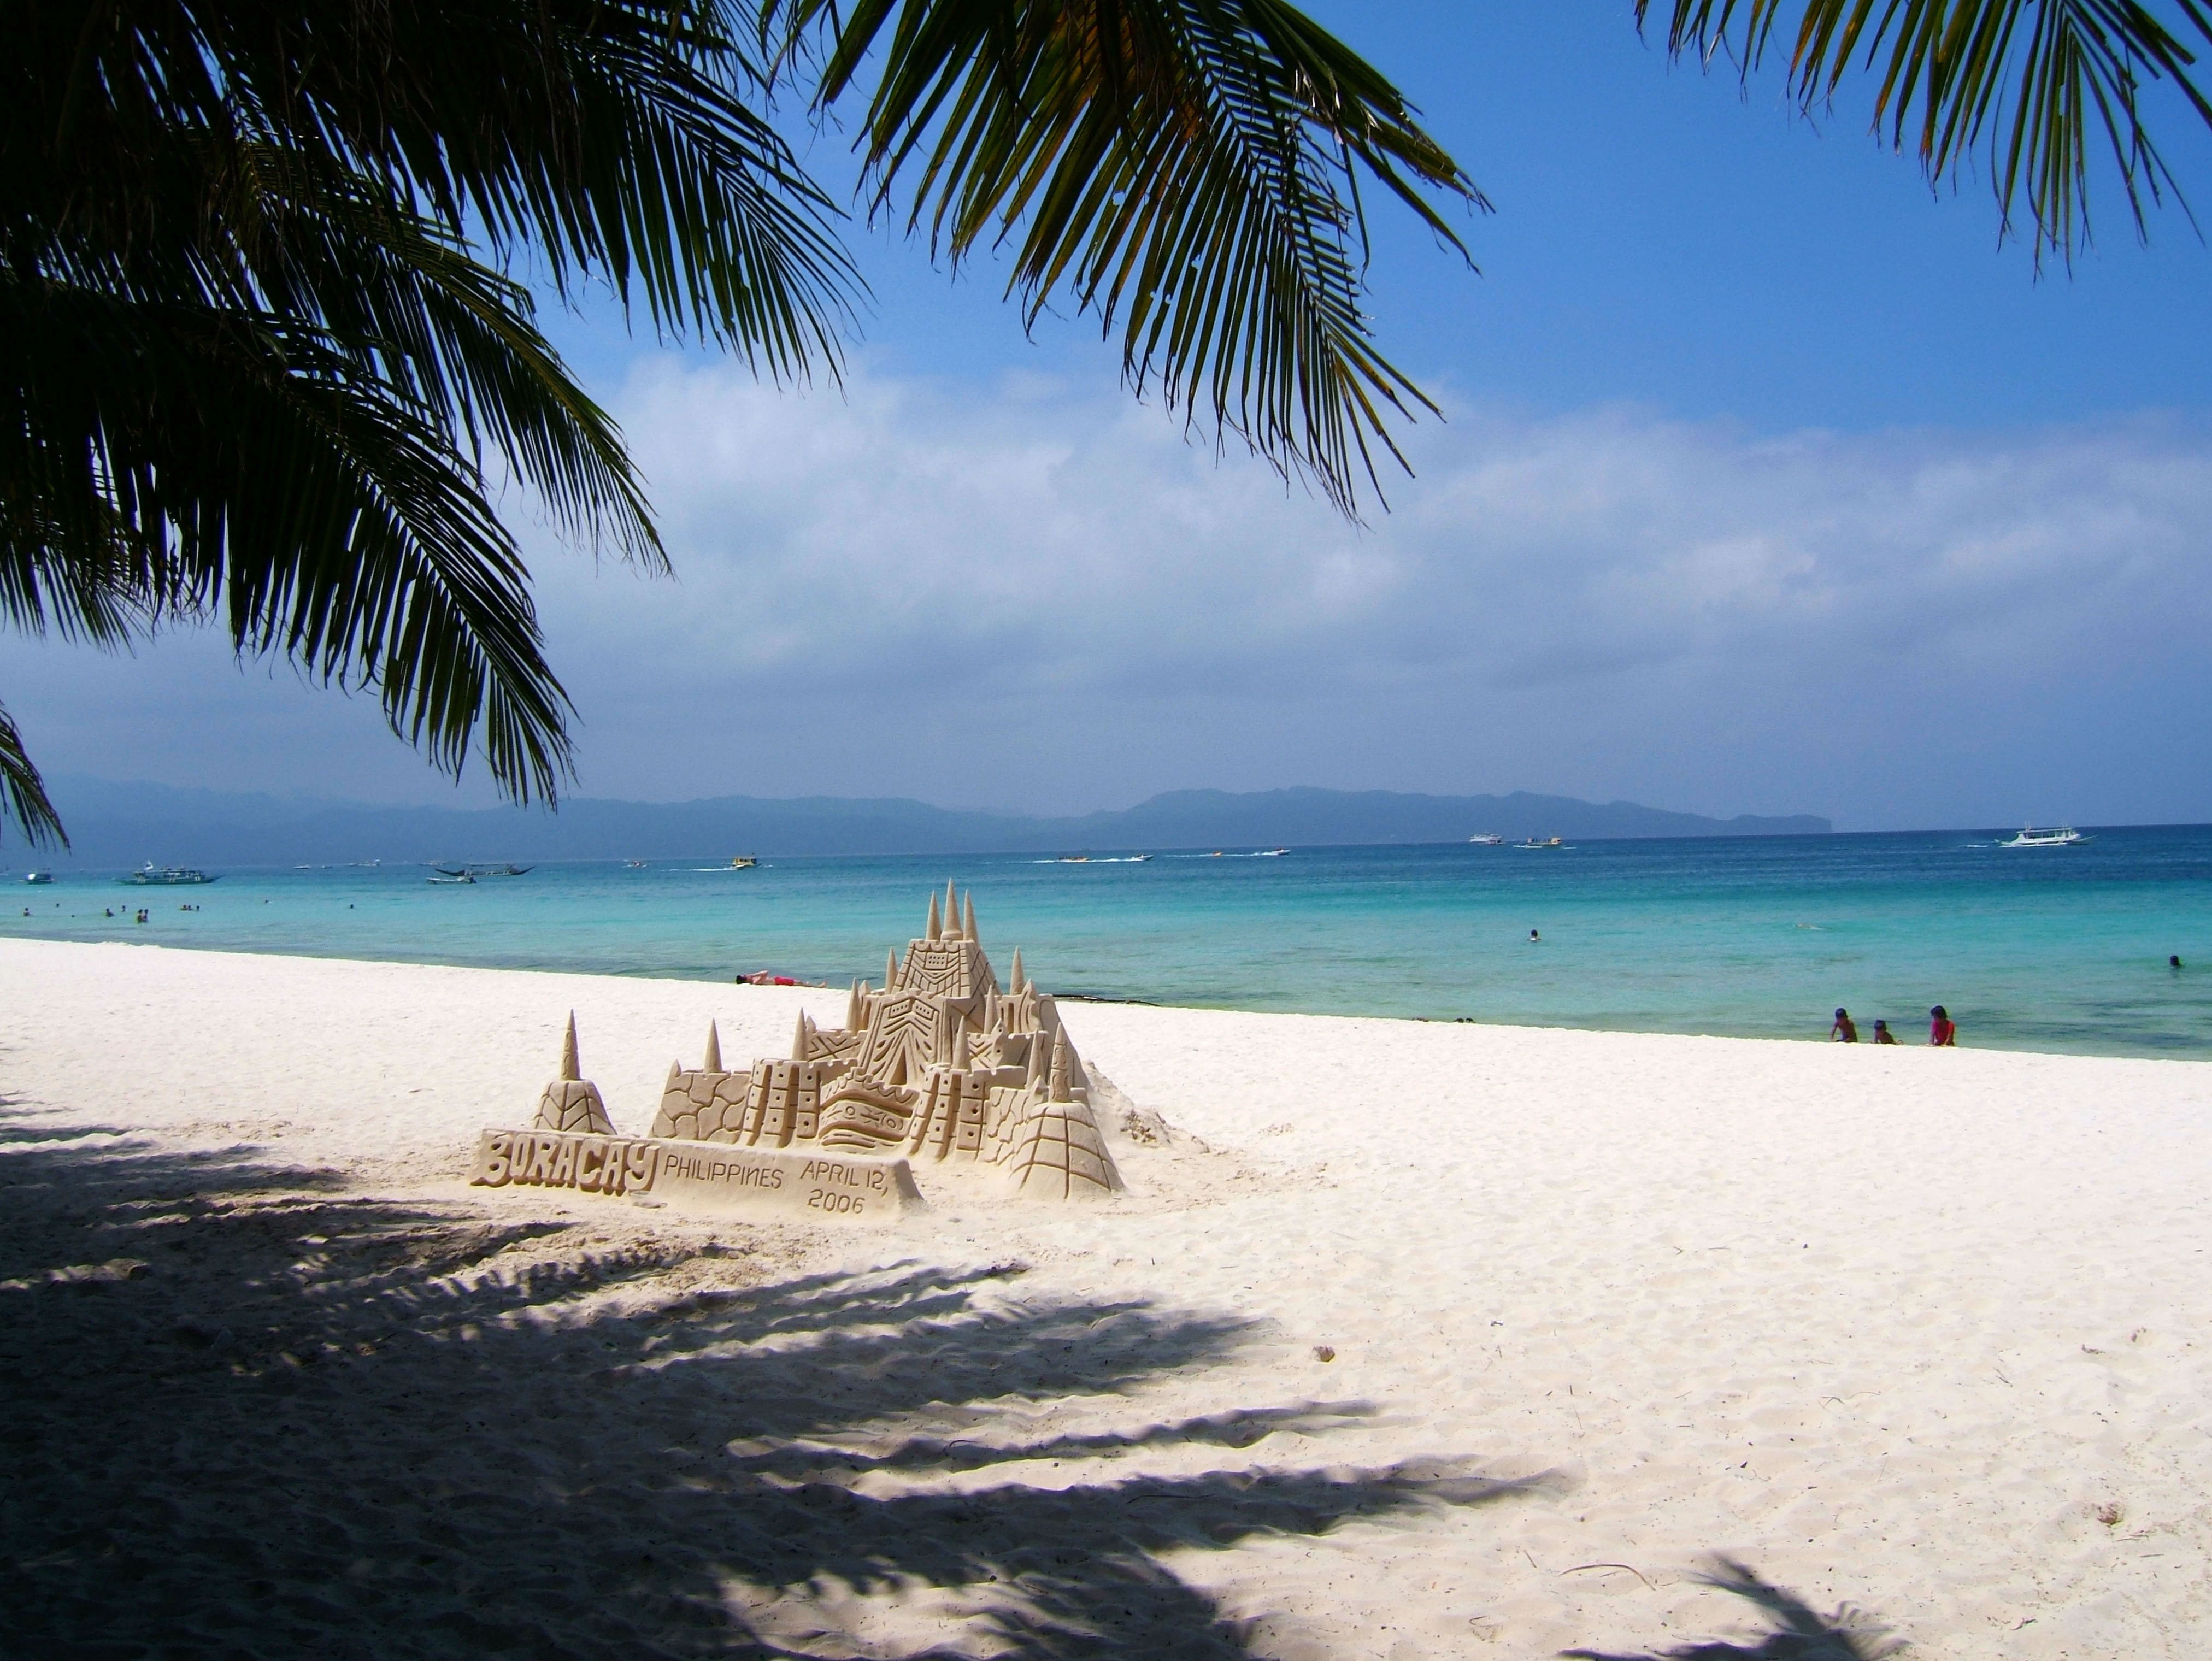 Philippines Sugar Islands Caticlan Boracay White Beach Sand Castles 2006 04